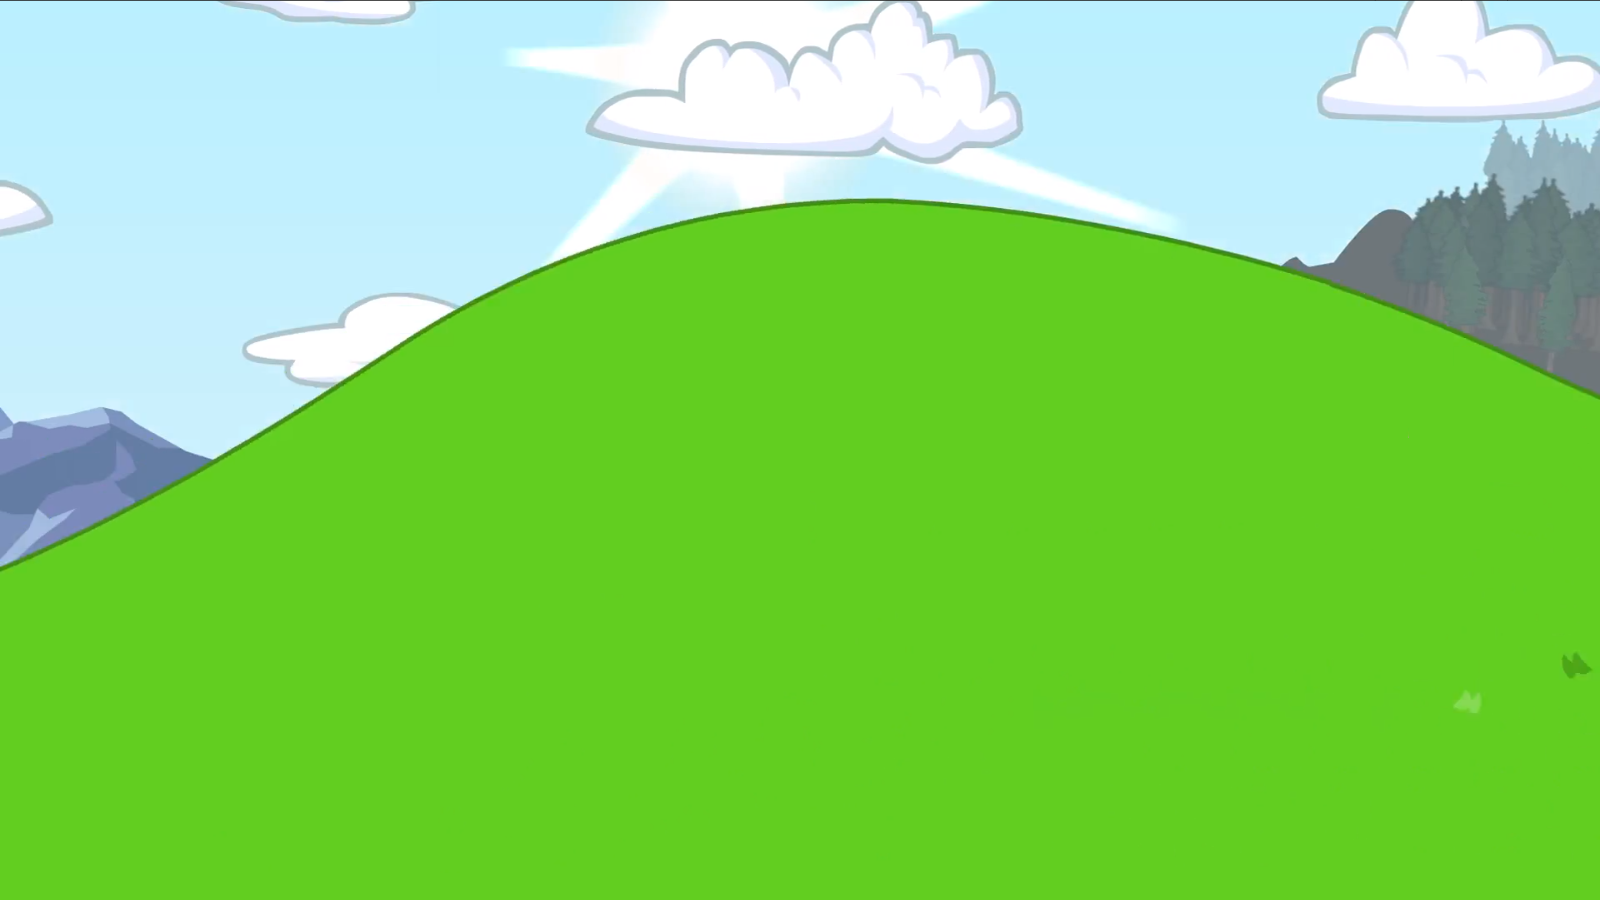 Hill.png - Hill Background PNG